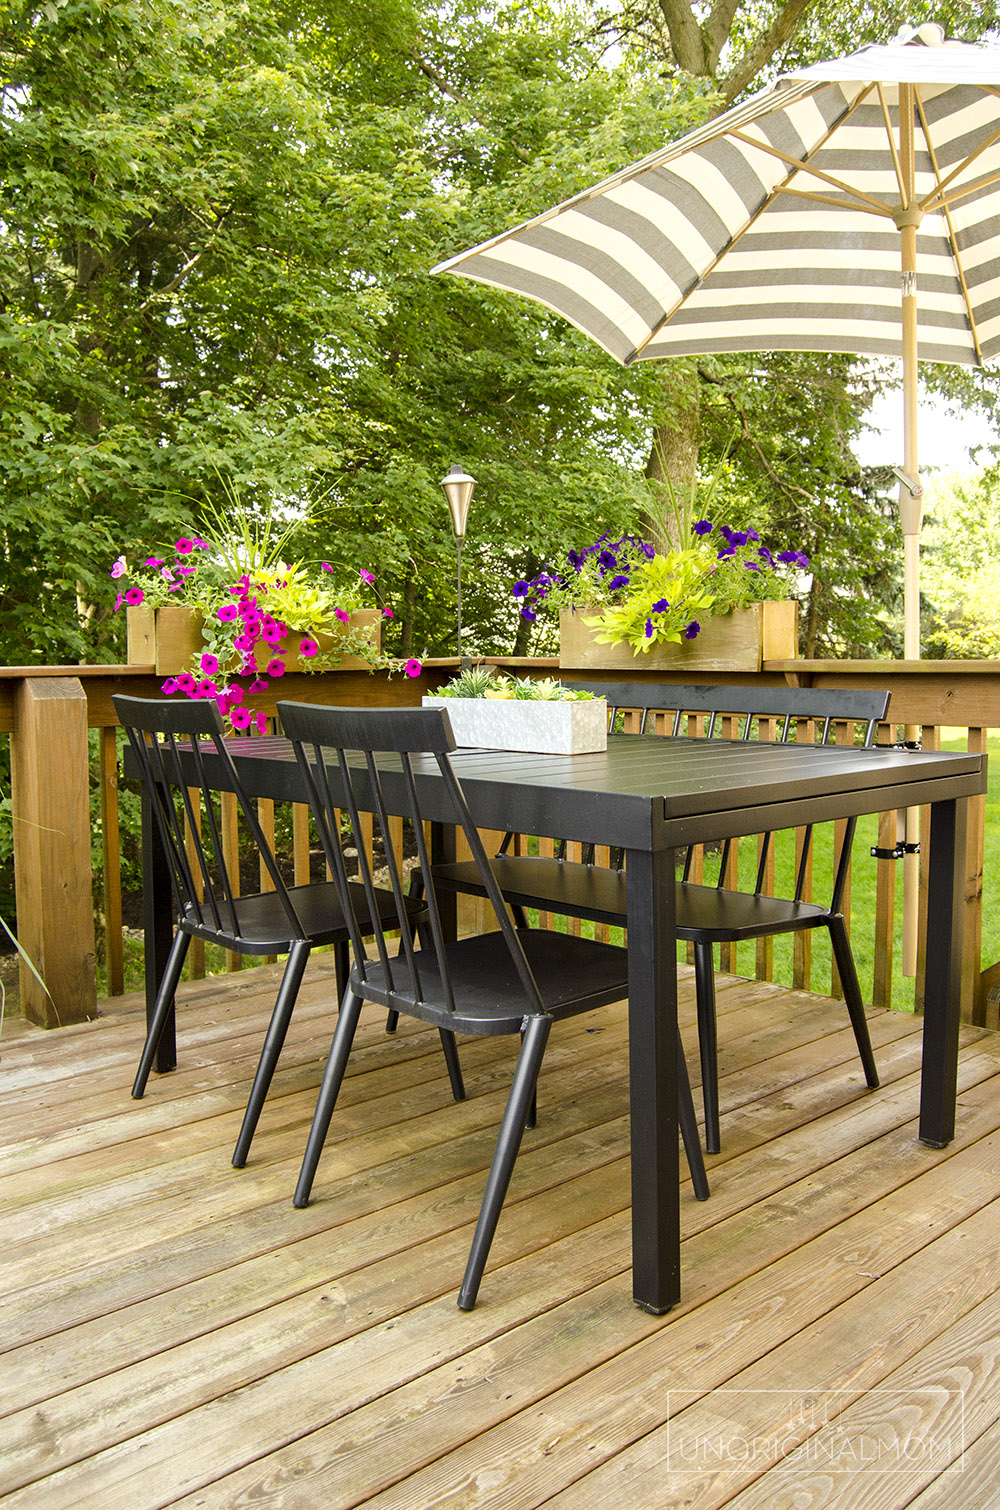 Deck dining area with a deck mounted umbrella - great way to save space on this small deck! | small deck decorating ideas